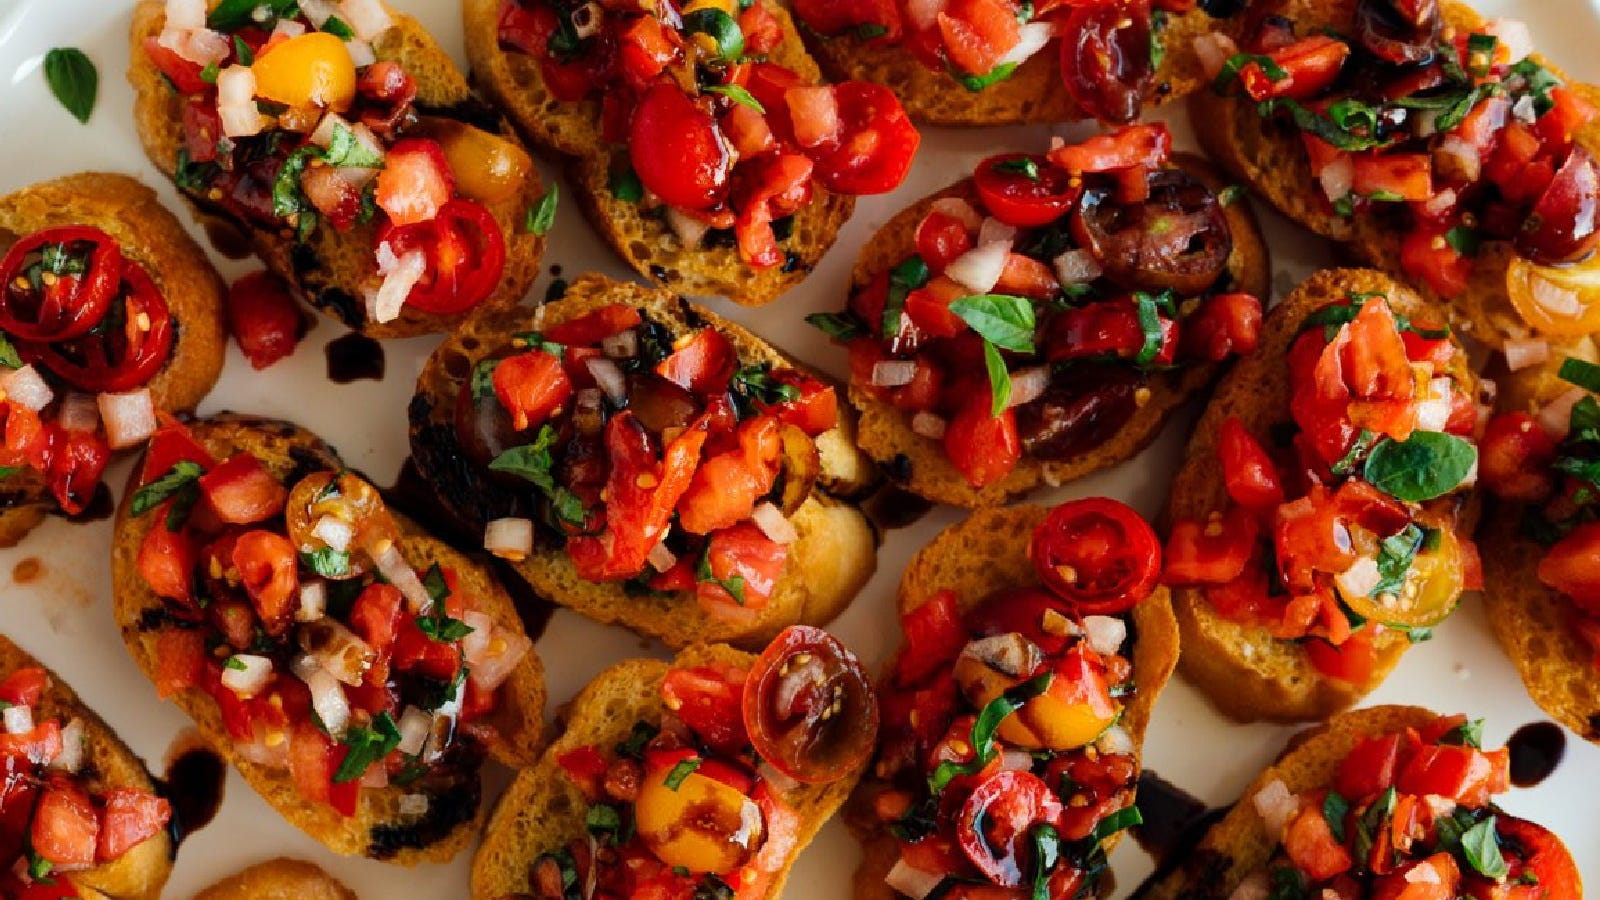 Scattered crostini's, topped with freshly made bruschetta and drizzled with a balsamic reduction.